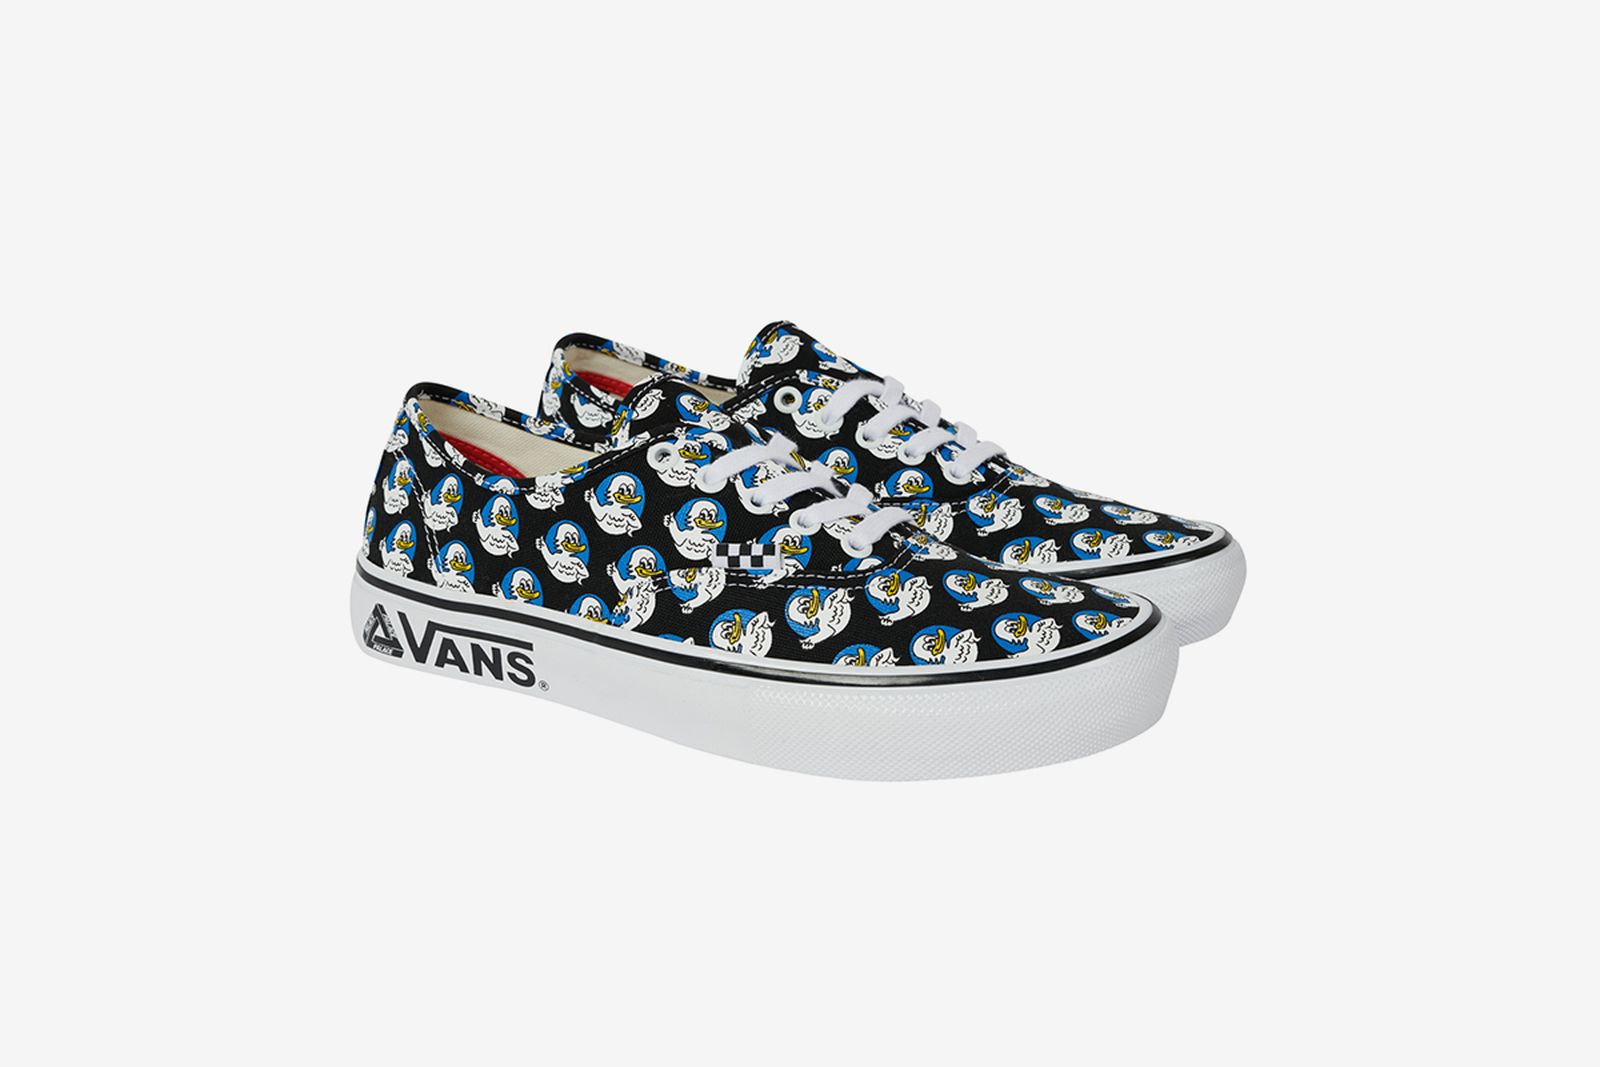 palace-vans-skate-authentic-release-date-price-1-02